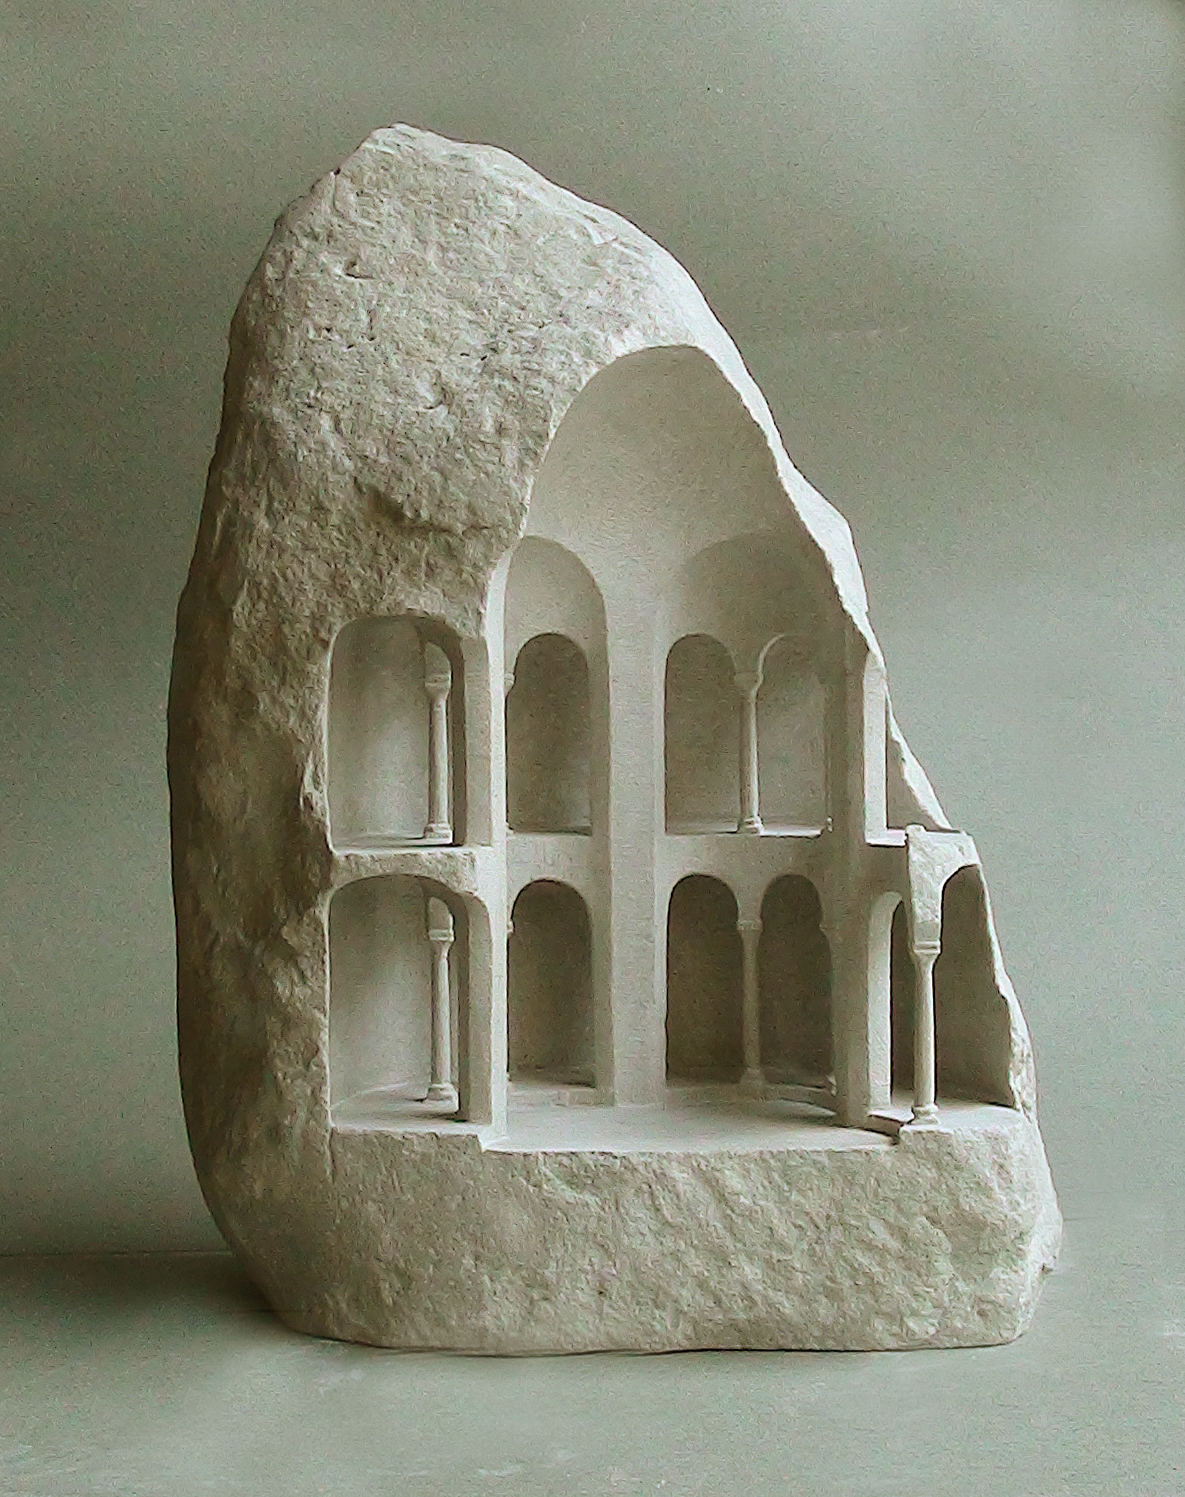 Gallery of stone sculptures reveal monumental architecture